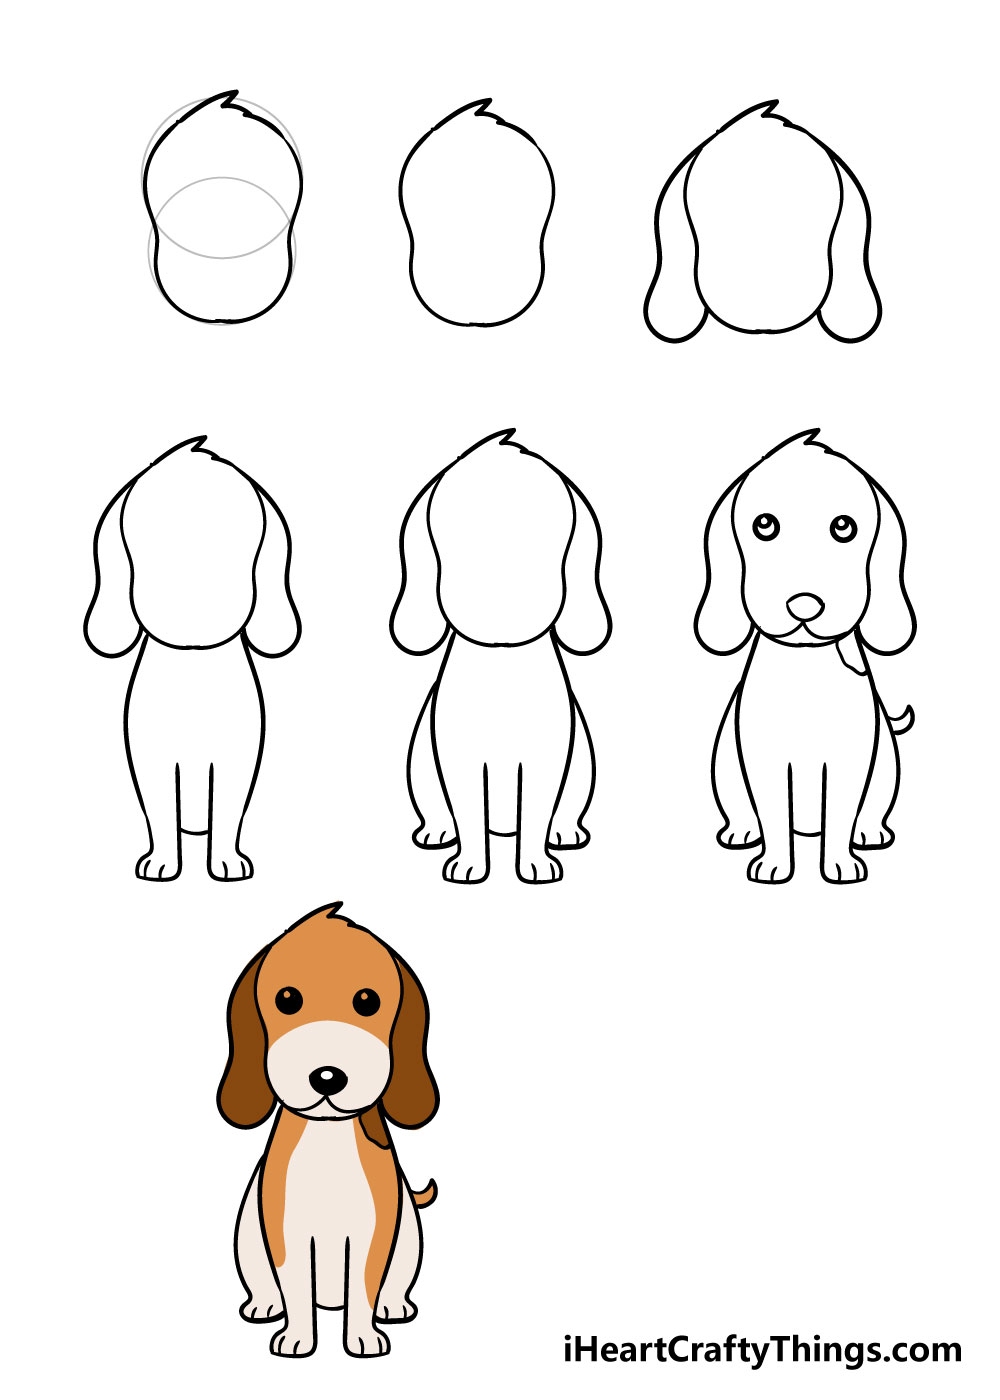 how to draw dog in 7 steps